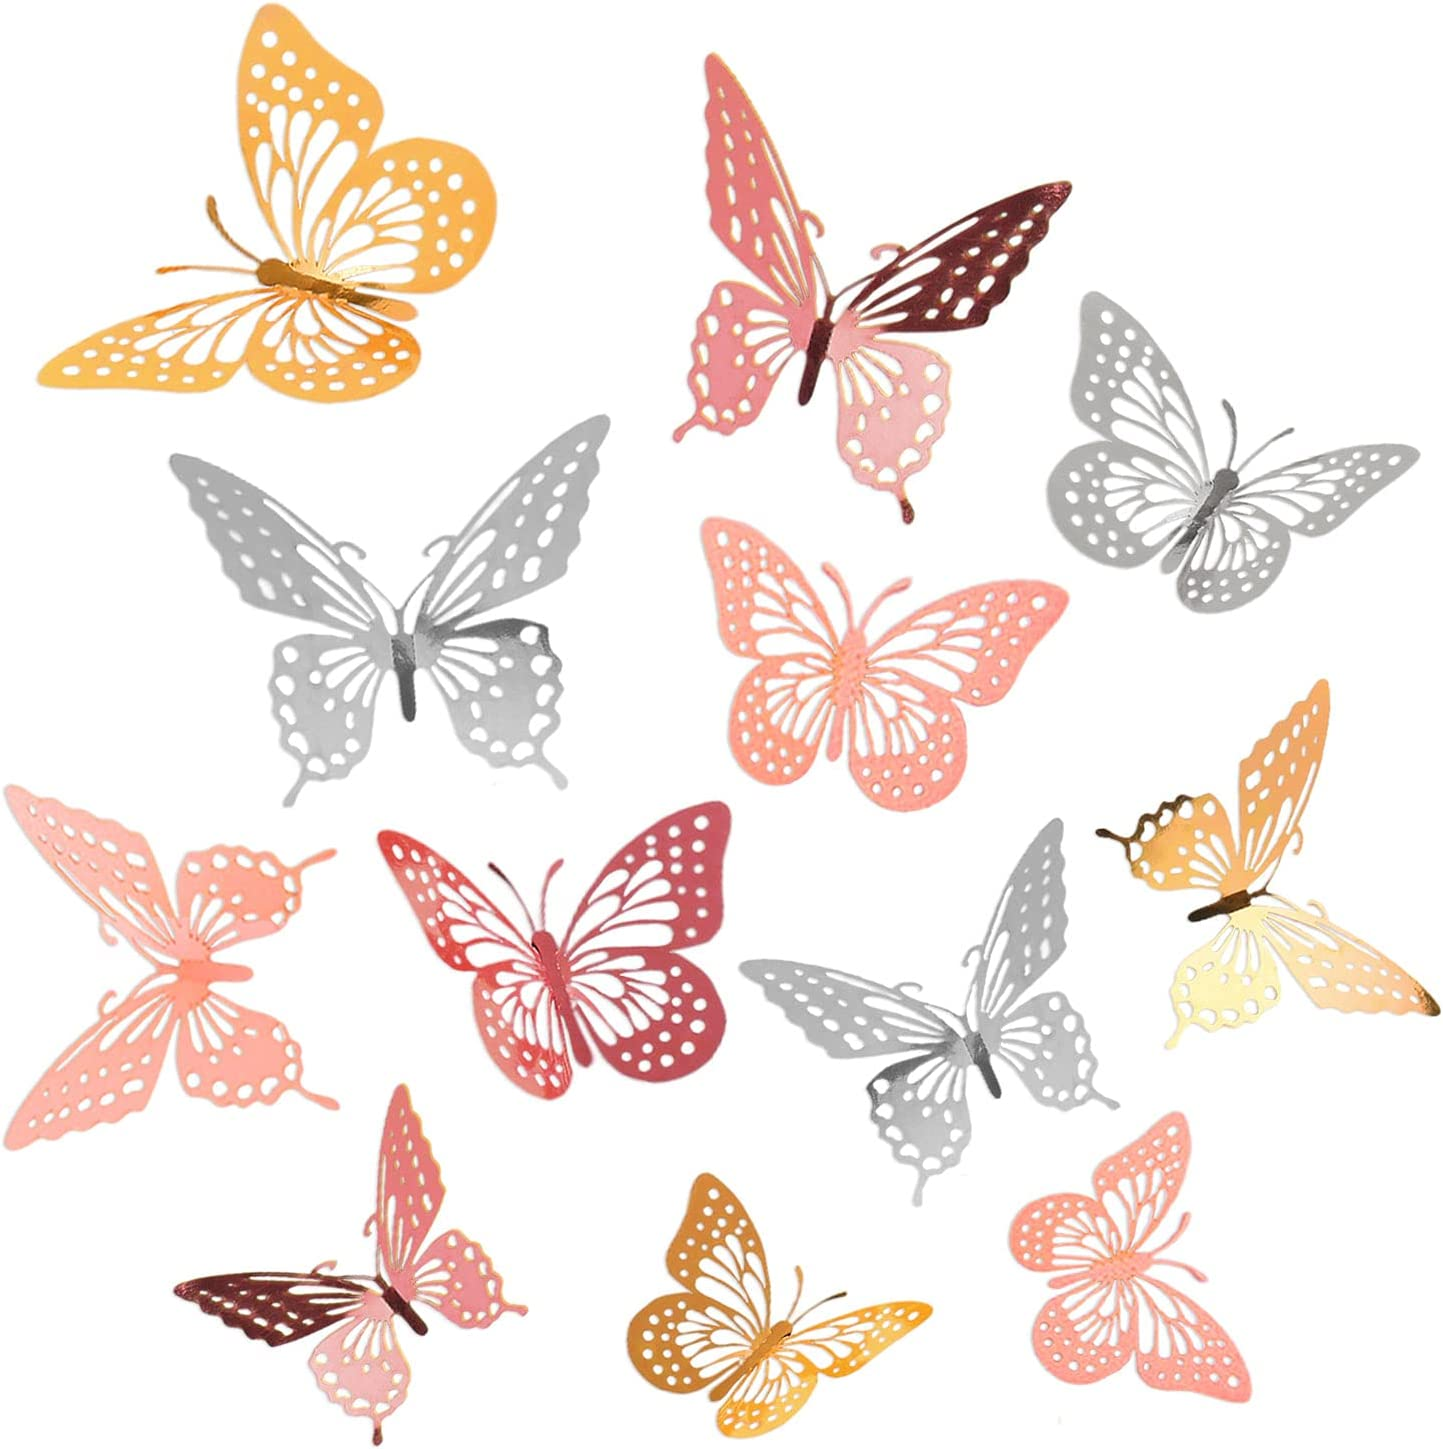 Homiton 96 Pcs 3D Butterfly Wall Stickers with 3 Sizes & 2 Styles, Removable Metallic Butterfly Wall Decals for Home Living Room Girls Bedroom Nursery Classroom Party Decorations (96, Gold, Rose Gold, Pink, Silver)